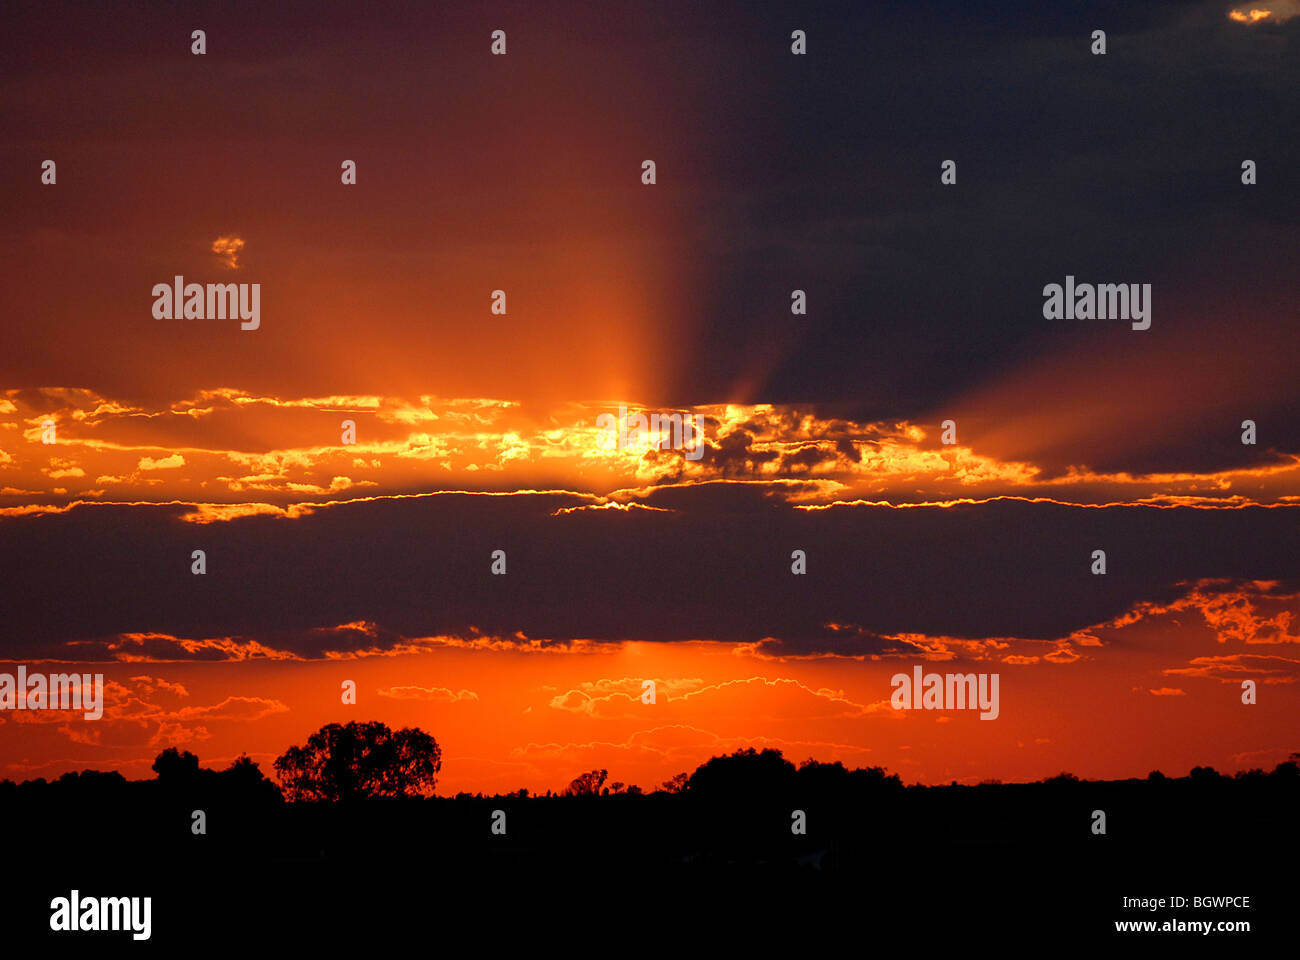 Sunset in the Outback, Australia - Stock Image